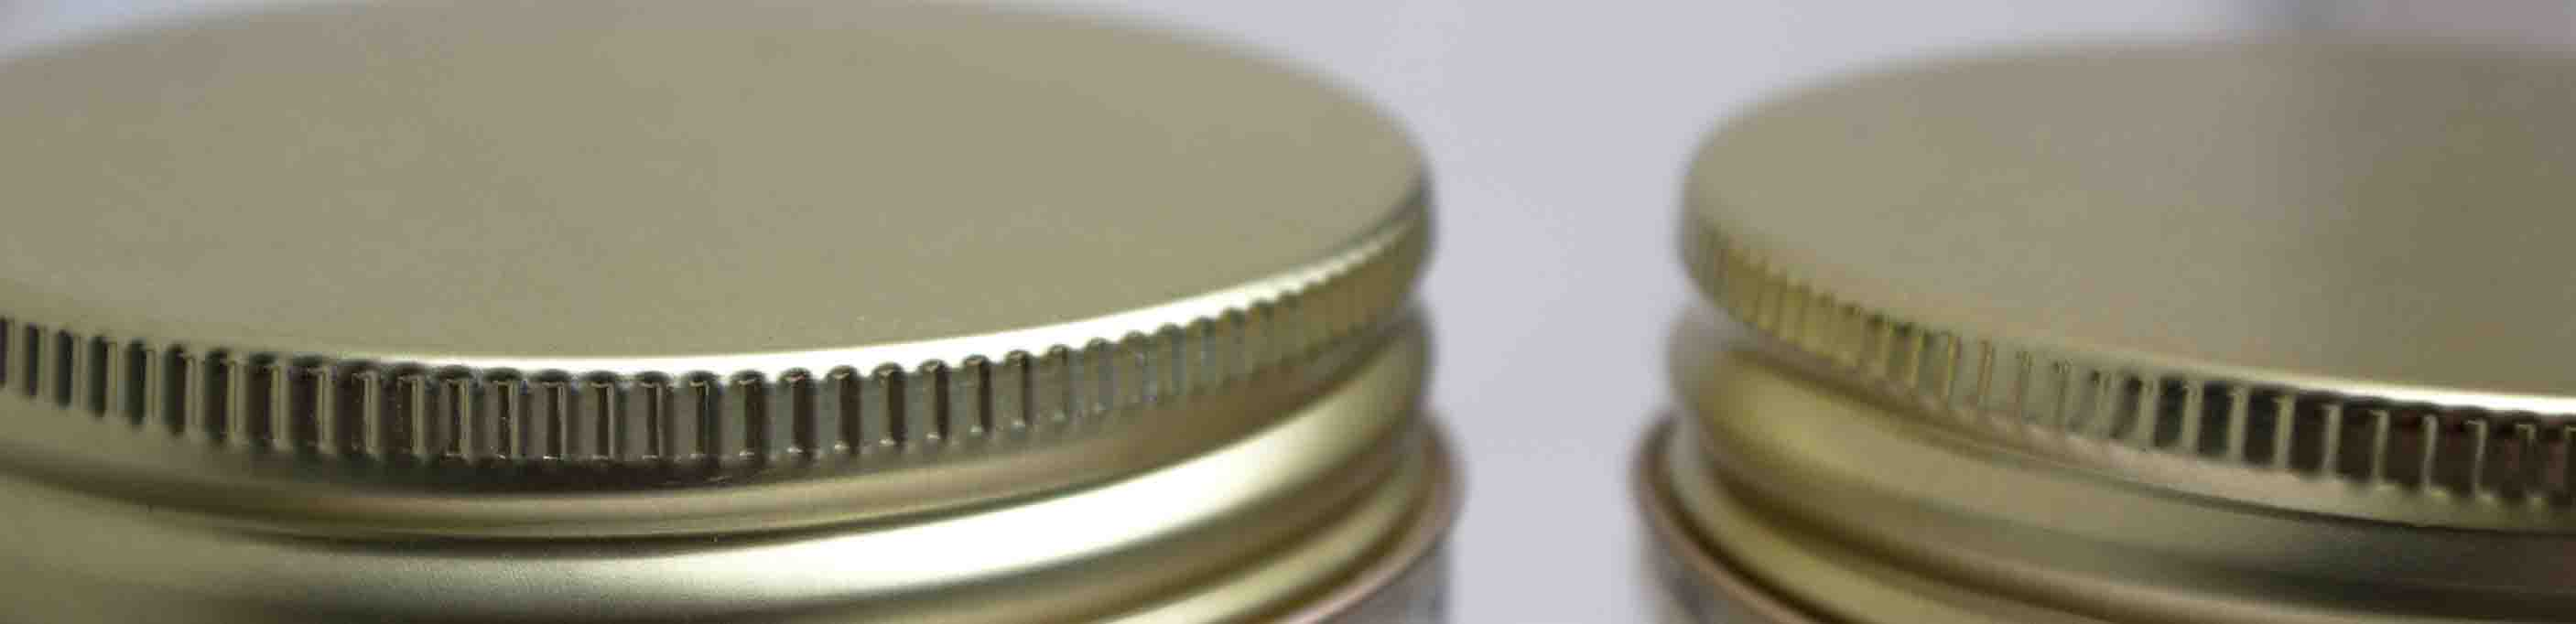 Metal Lids for Candle Jars - 38 - 400 - Silver